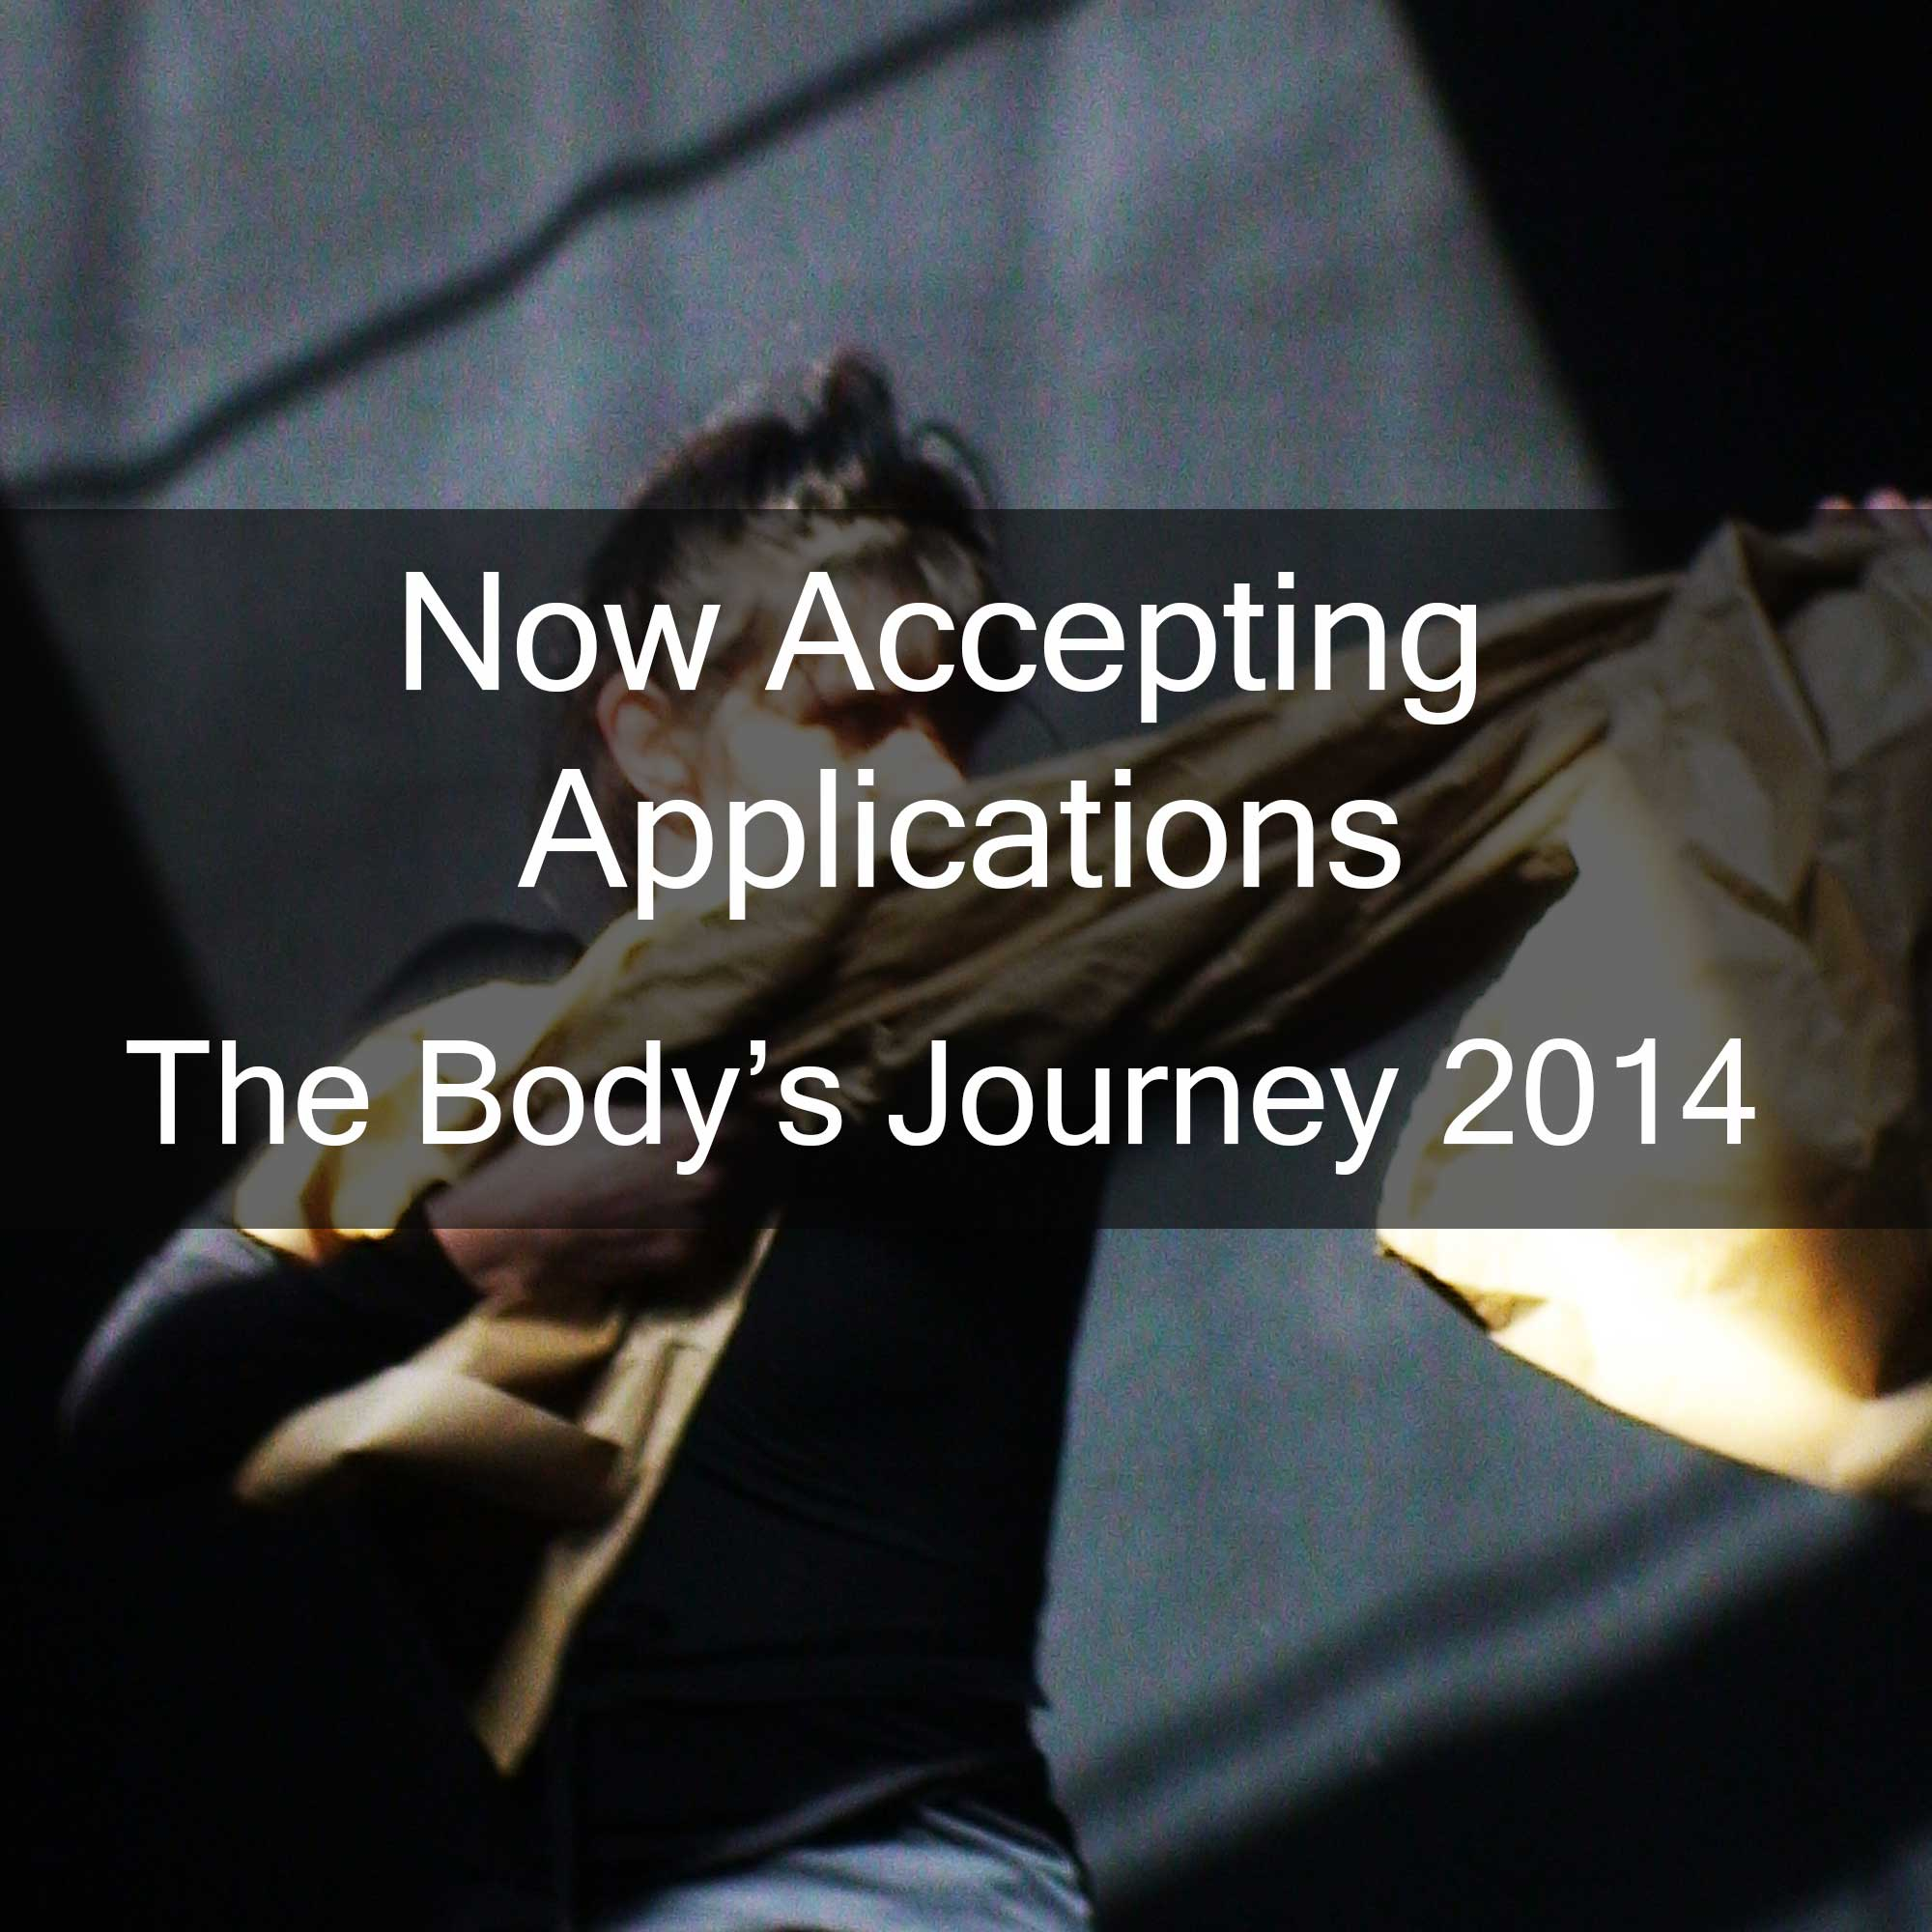 The Body's Journey 2014